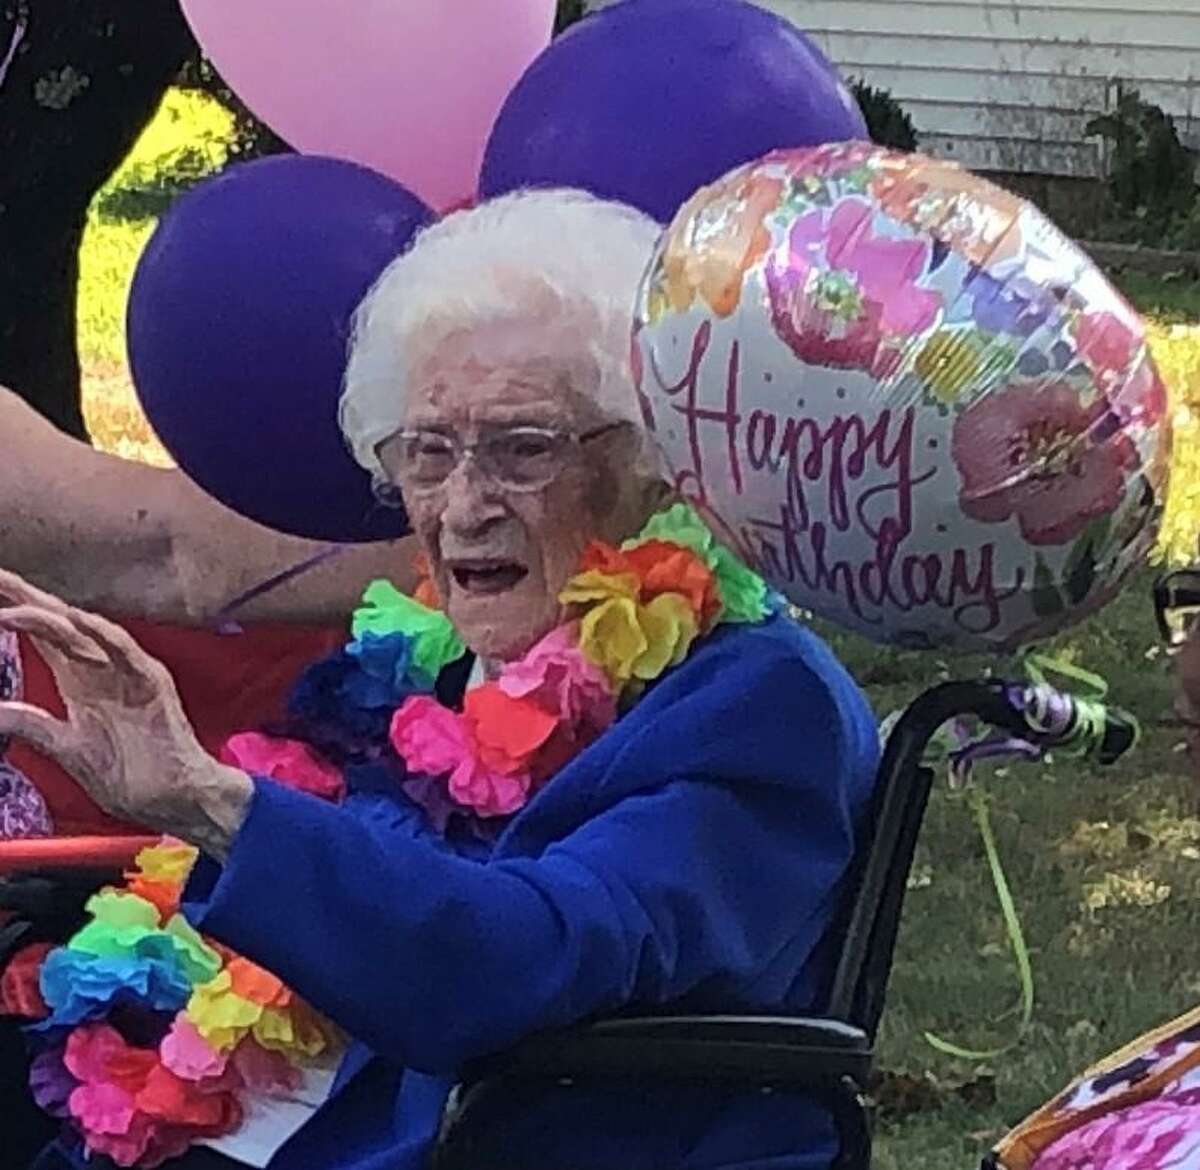 Spectrum/Dorothy Murphy of New Milford turned 109 Aug. 8, 2020, and shared her special day with friend Gift Nifor, 9, whose birthday is the same day. A car parade was held in their honor Aug. 8 at Murphy's home.